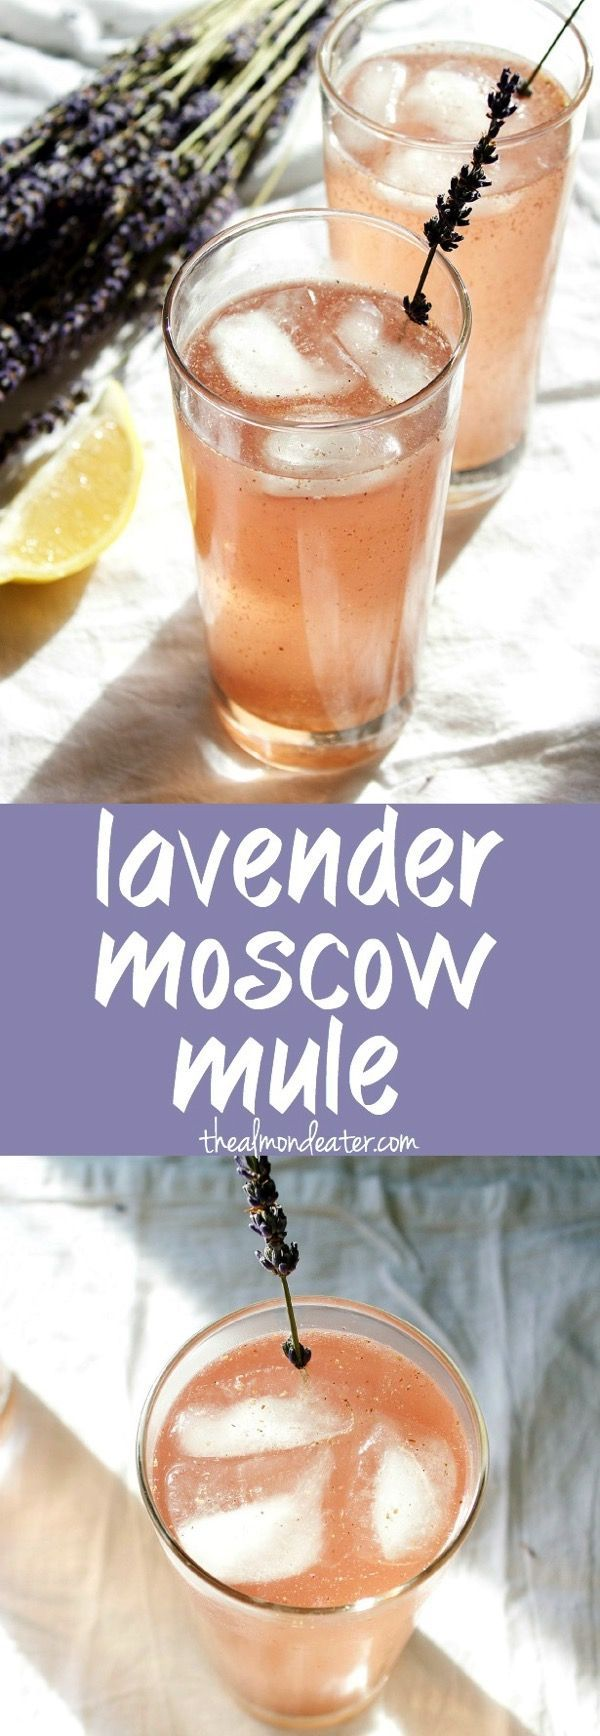 Lavender Moscow Mule | A seriously refreshing take on the classic drink | thealmondeater.com